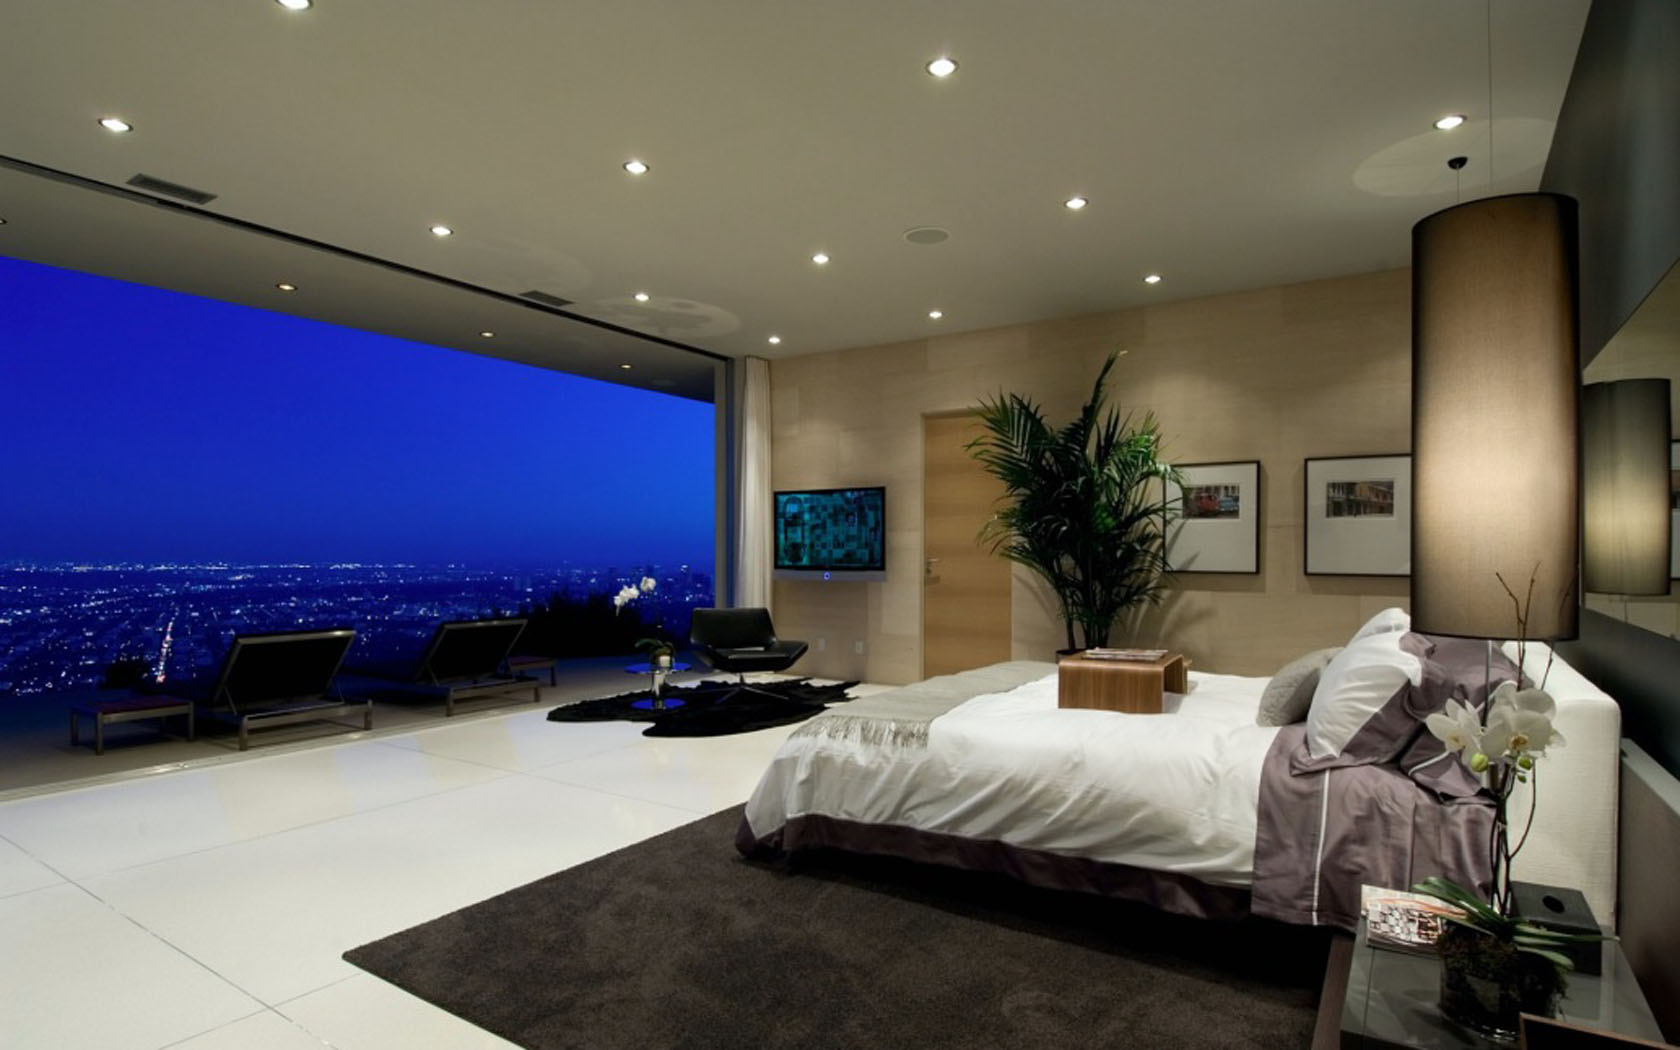 bedroom architecture design small bedroom bed architecture interior design wallpaper 1680x1050 148313 wallpaperup